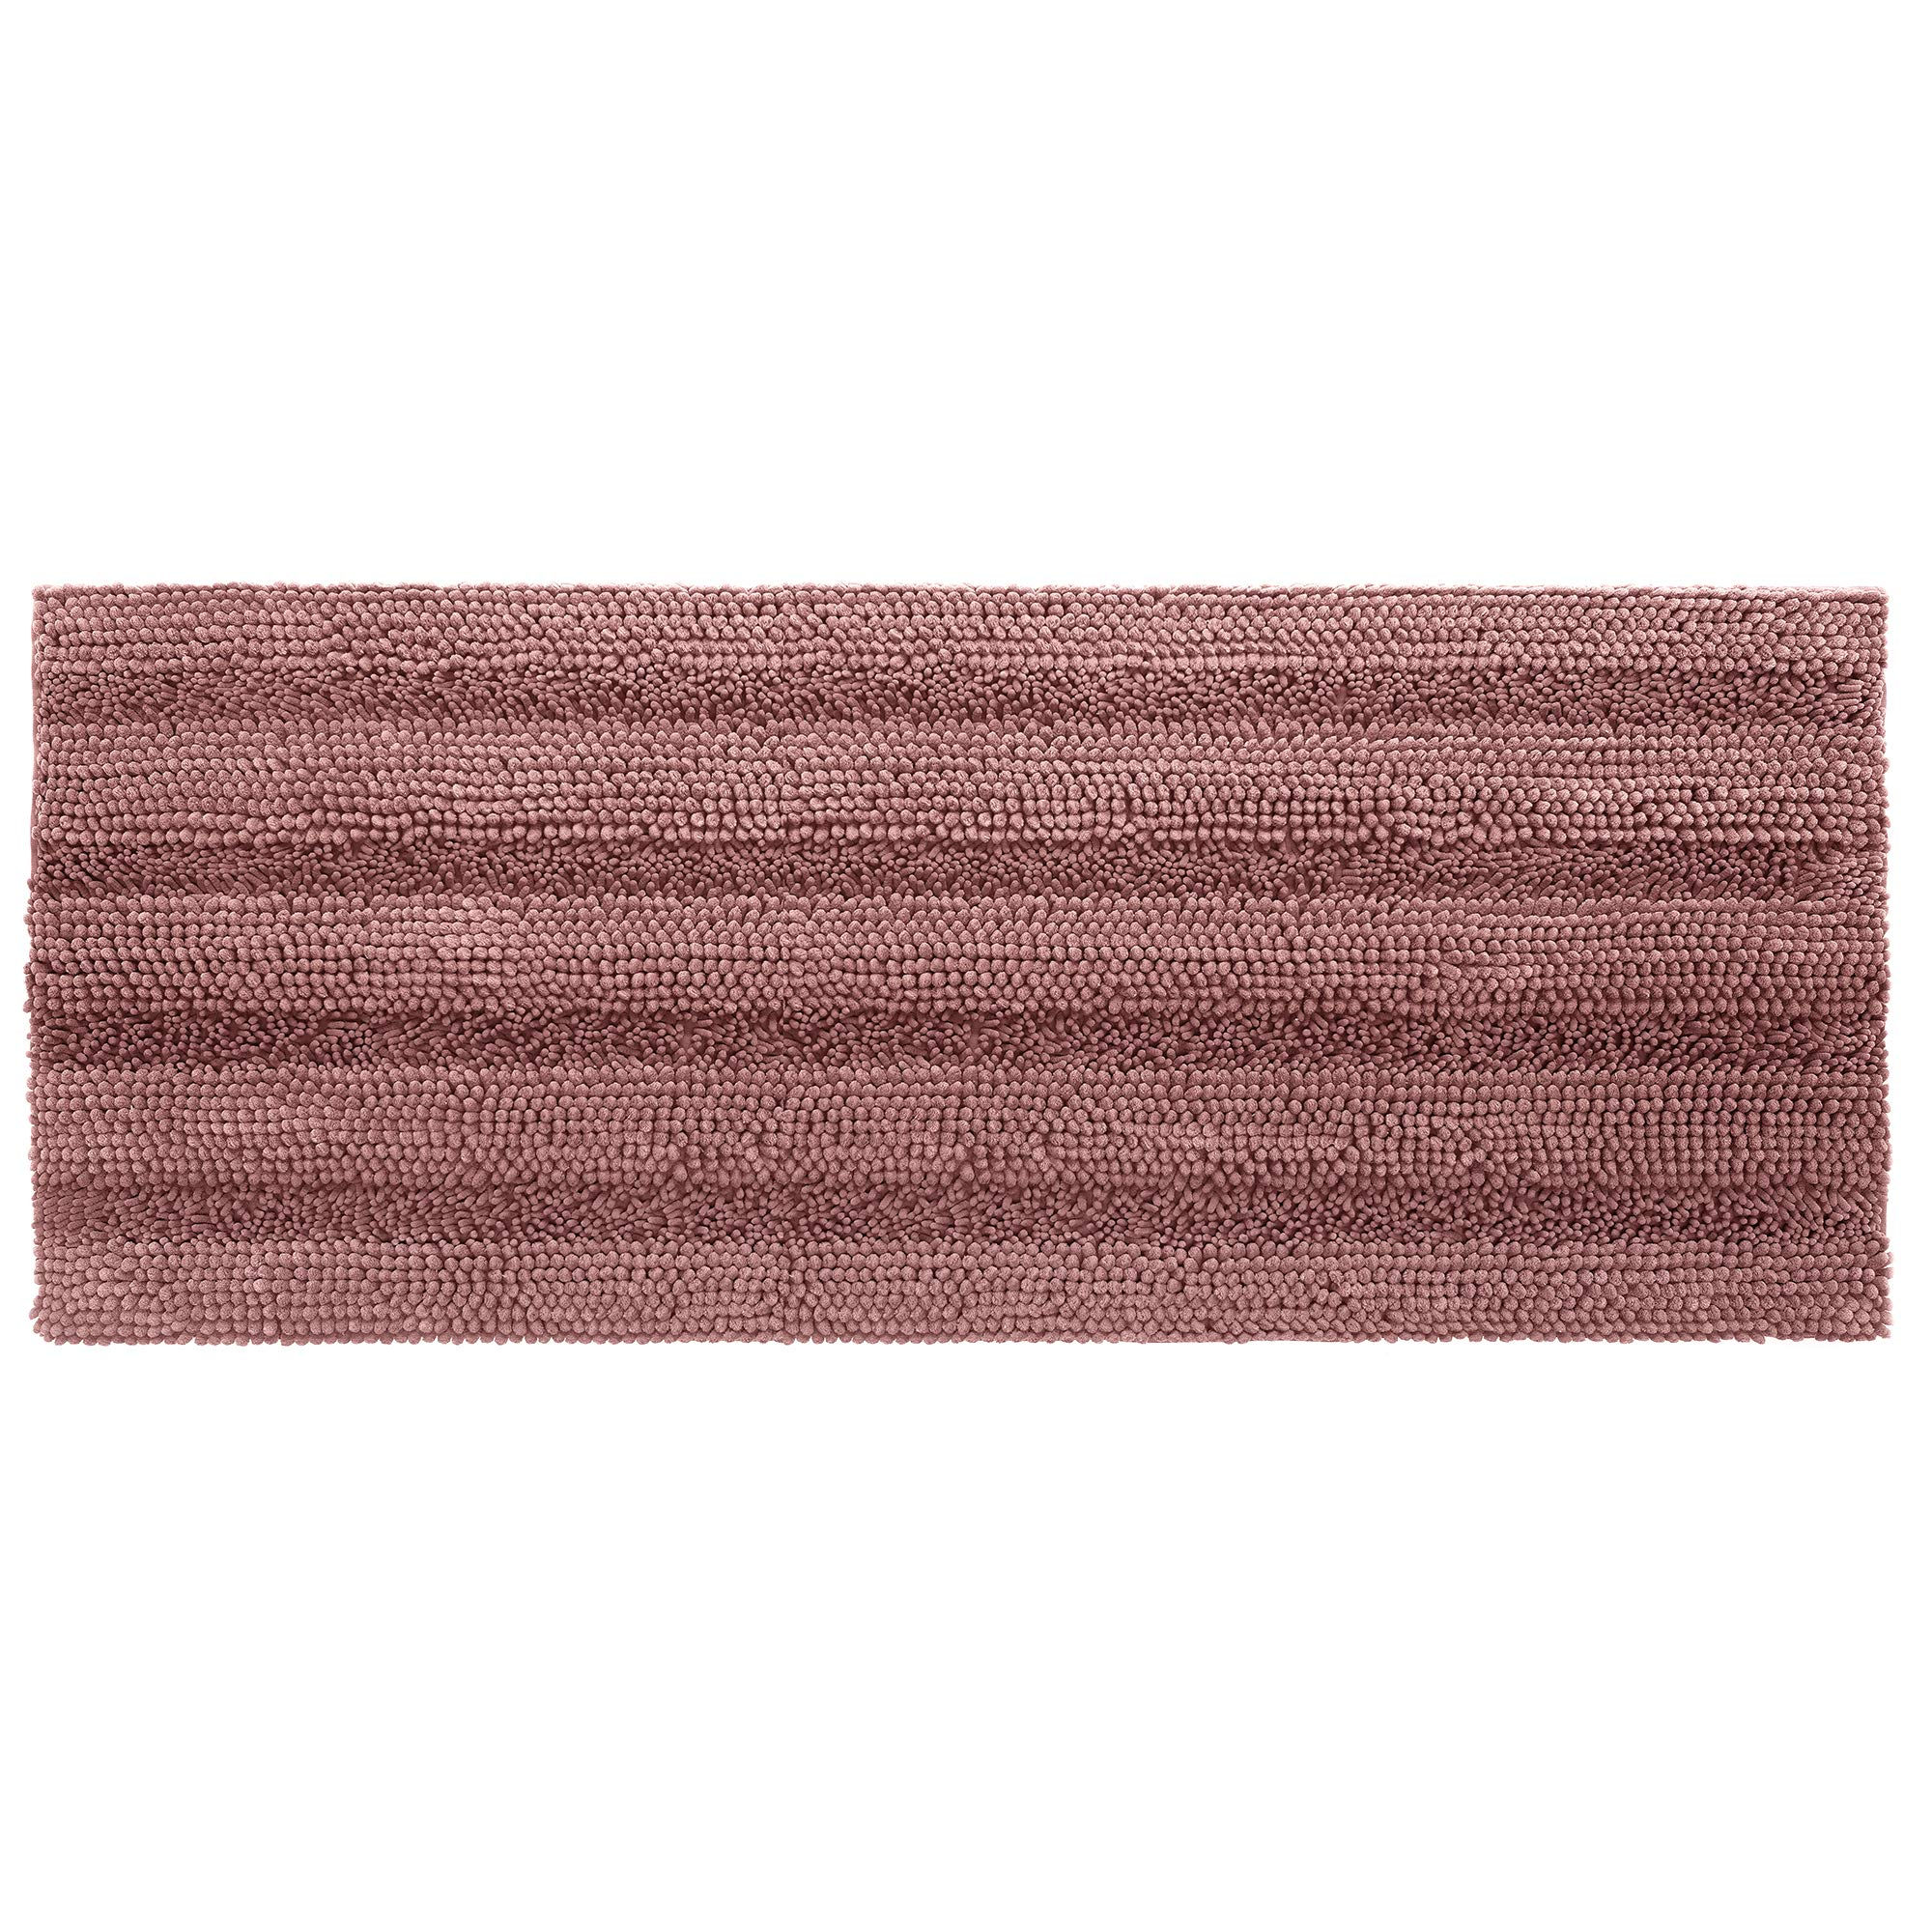 Shaggy Chenille Bath Mat, Soft and Absorbent Non Slip Bathroom Rug, Plush Carpet Mats for Bathtub and Shower, Machine Washable, 24 x 60 Inch, Old Rose